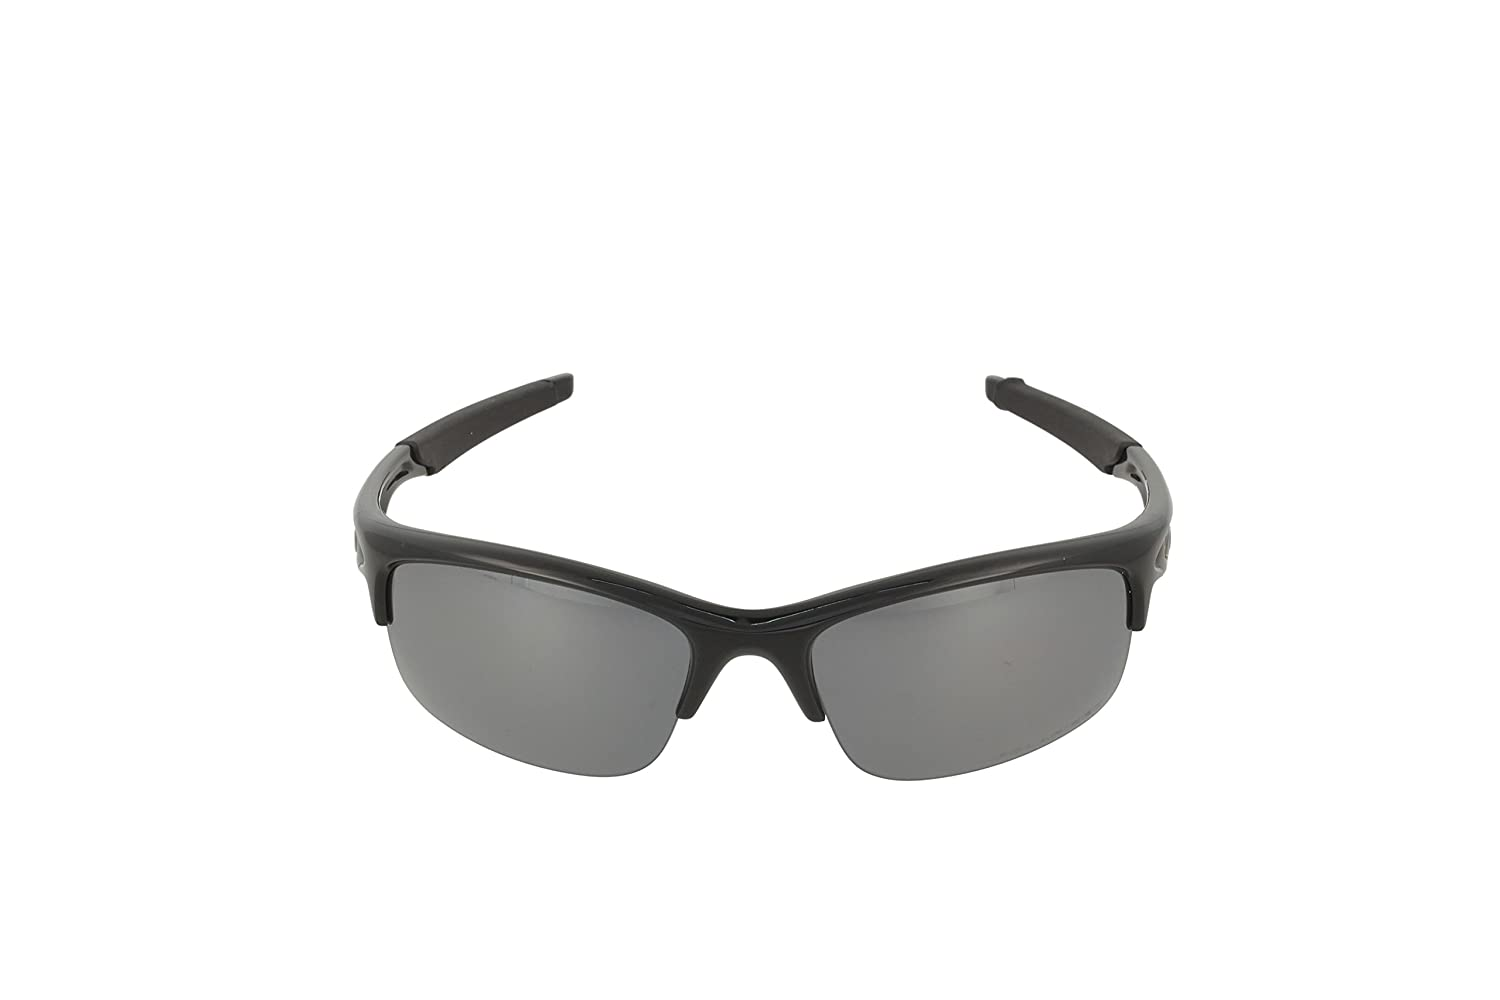 8a01b2ea3c ... new arrivals oakley mens bottle rocket sunglasses black 62 oakley  amazon sports outdoors fe080 ac851